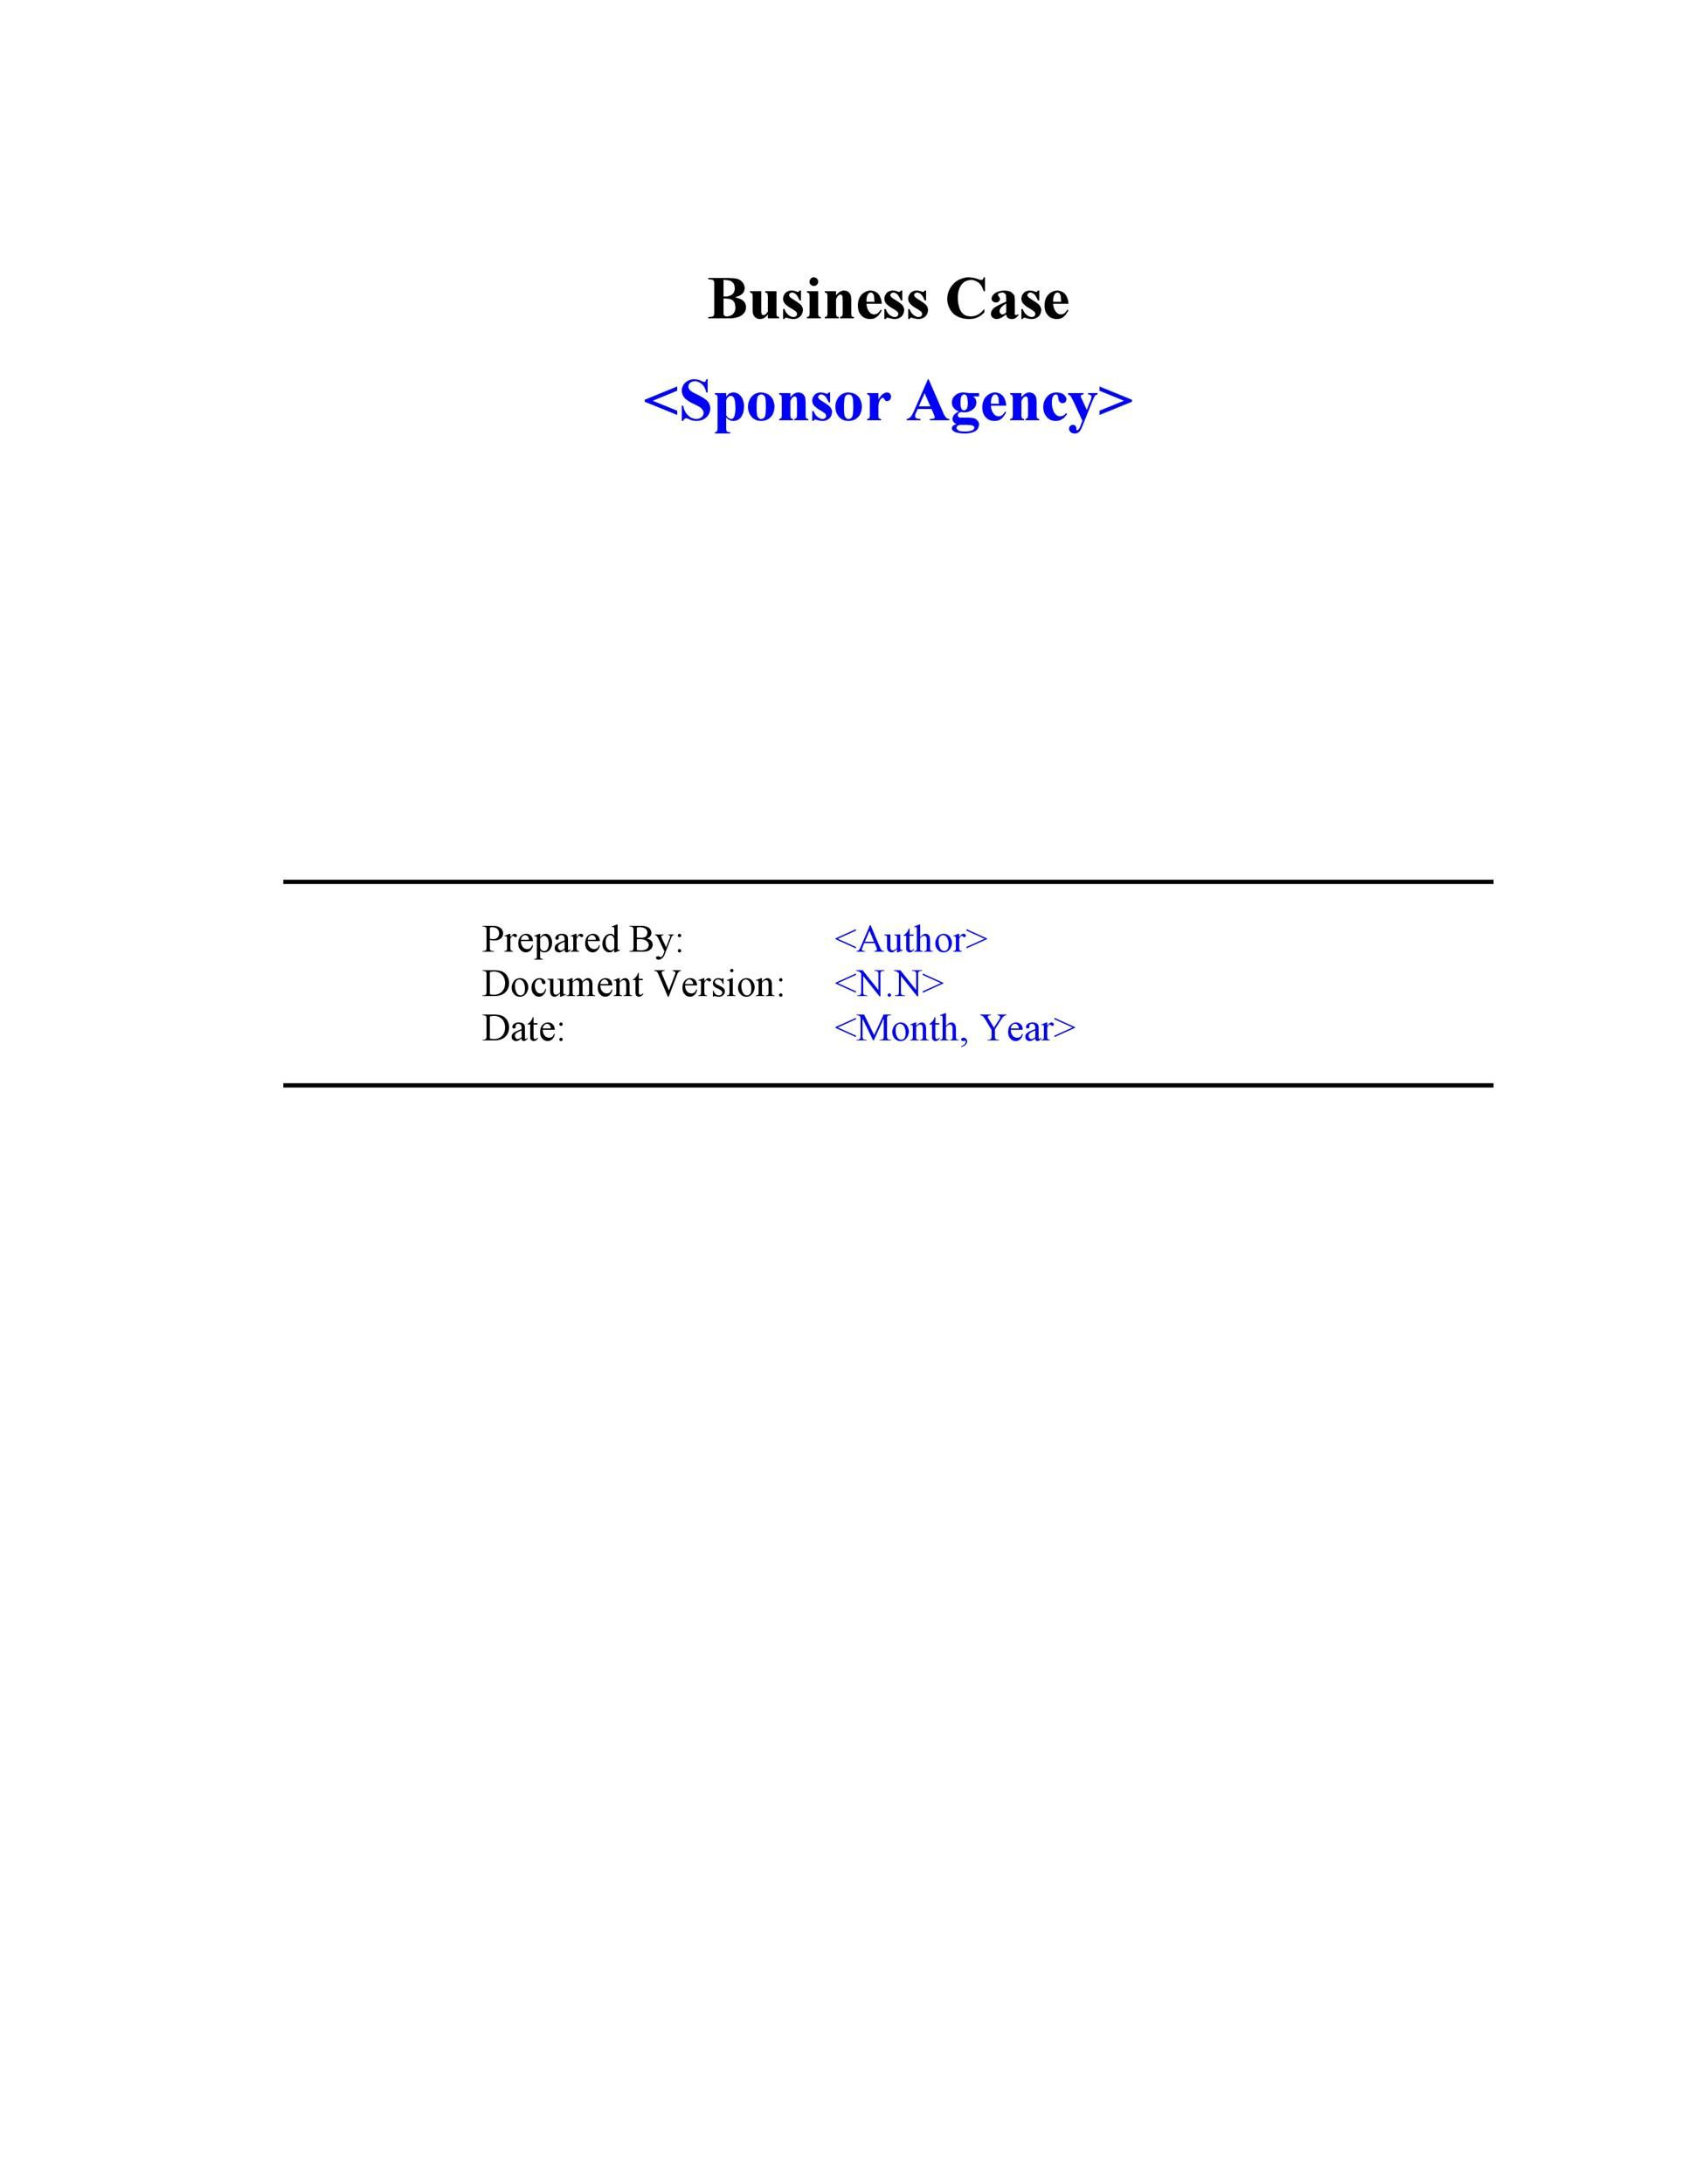 005 Impressive Simple Busines Case Template Image  Ppt Proposal Example PdfFull